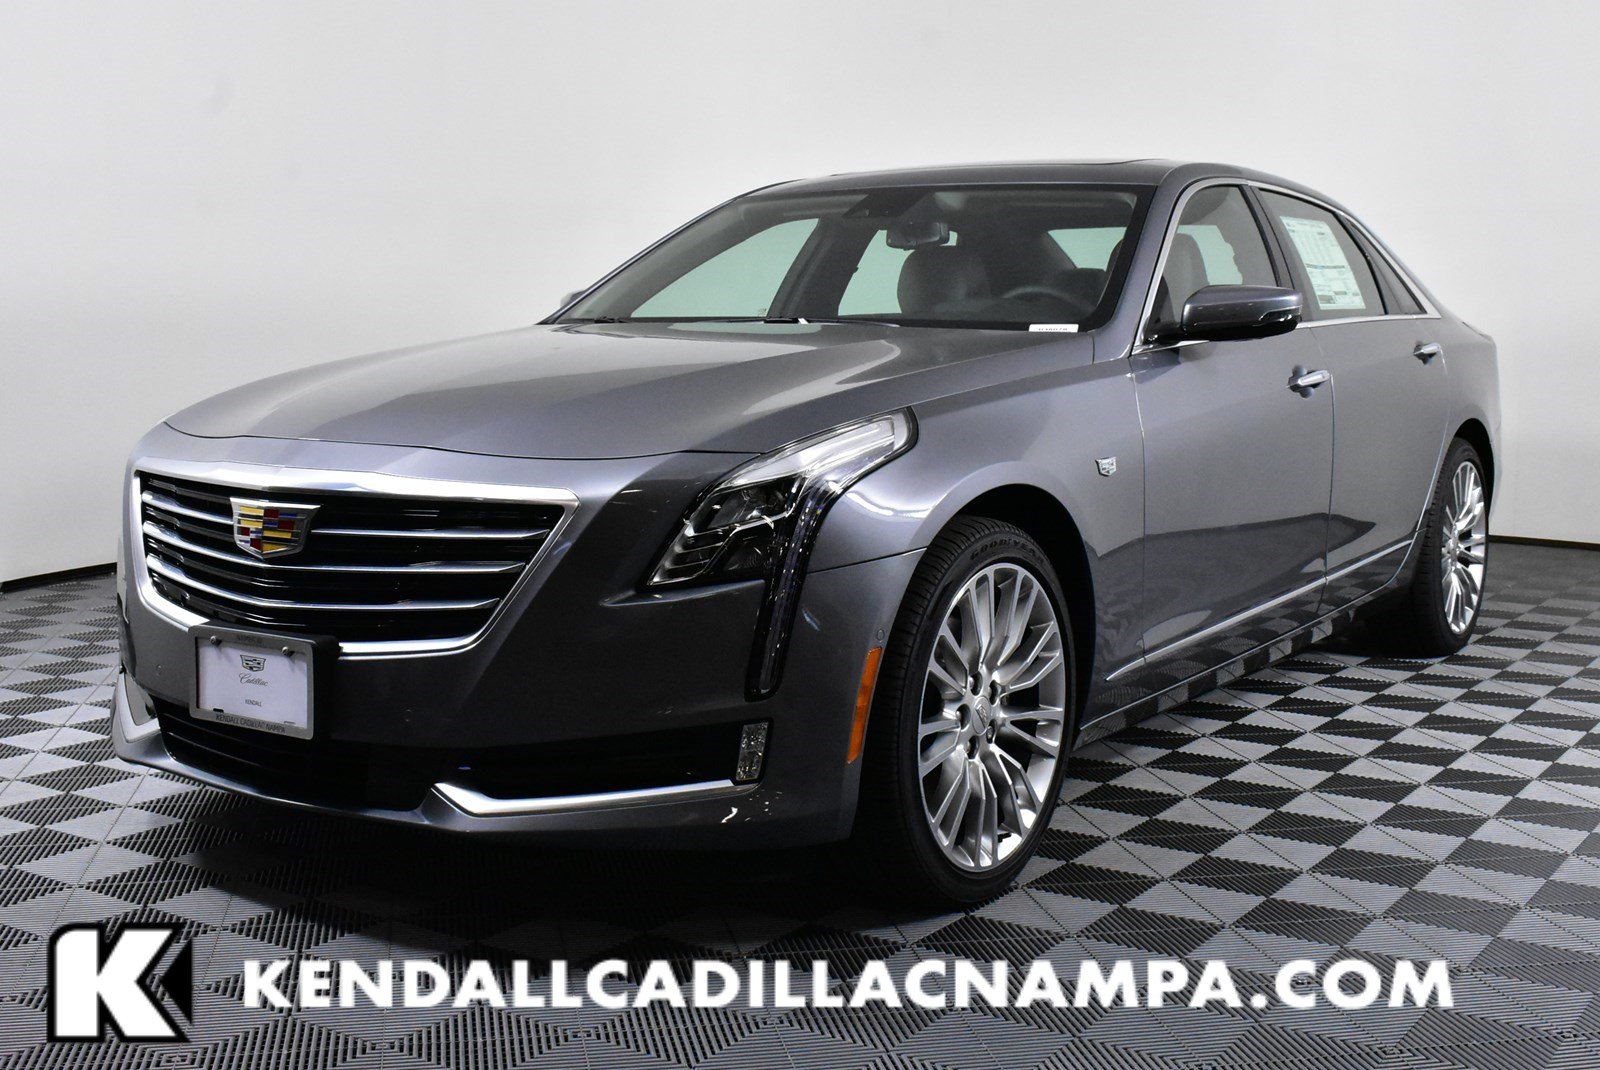 New 2018 Cadillac Ct6 Premium Luxury Awd 4 Door Cars For Sale